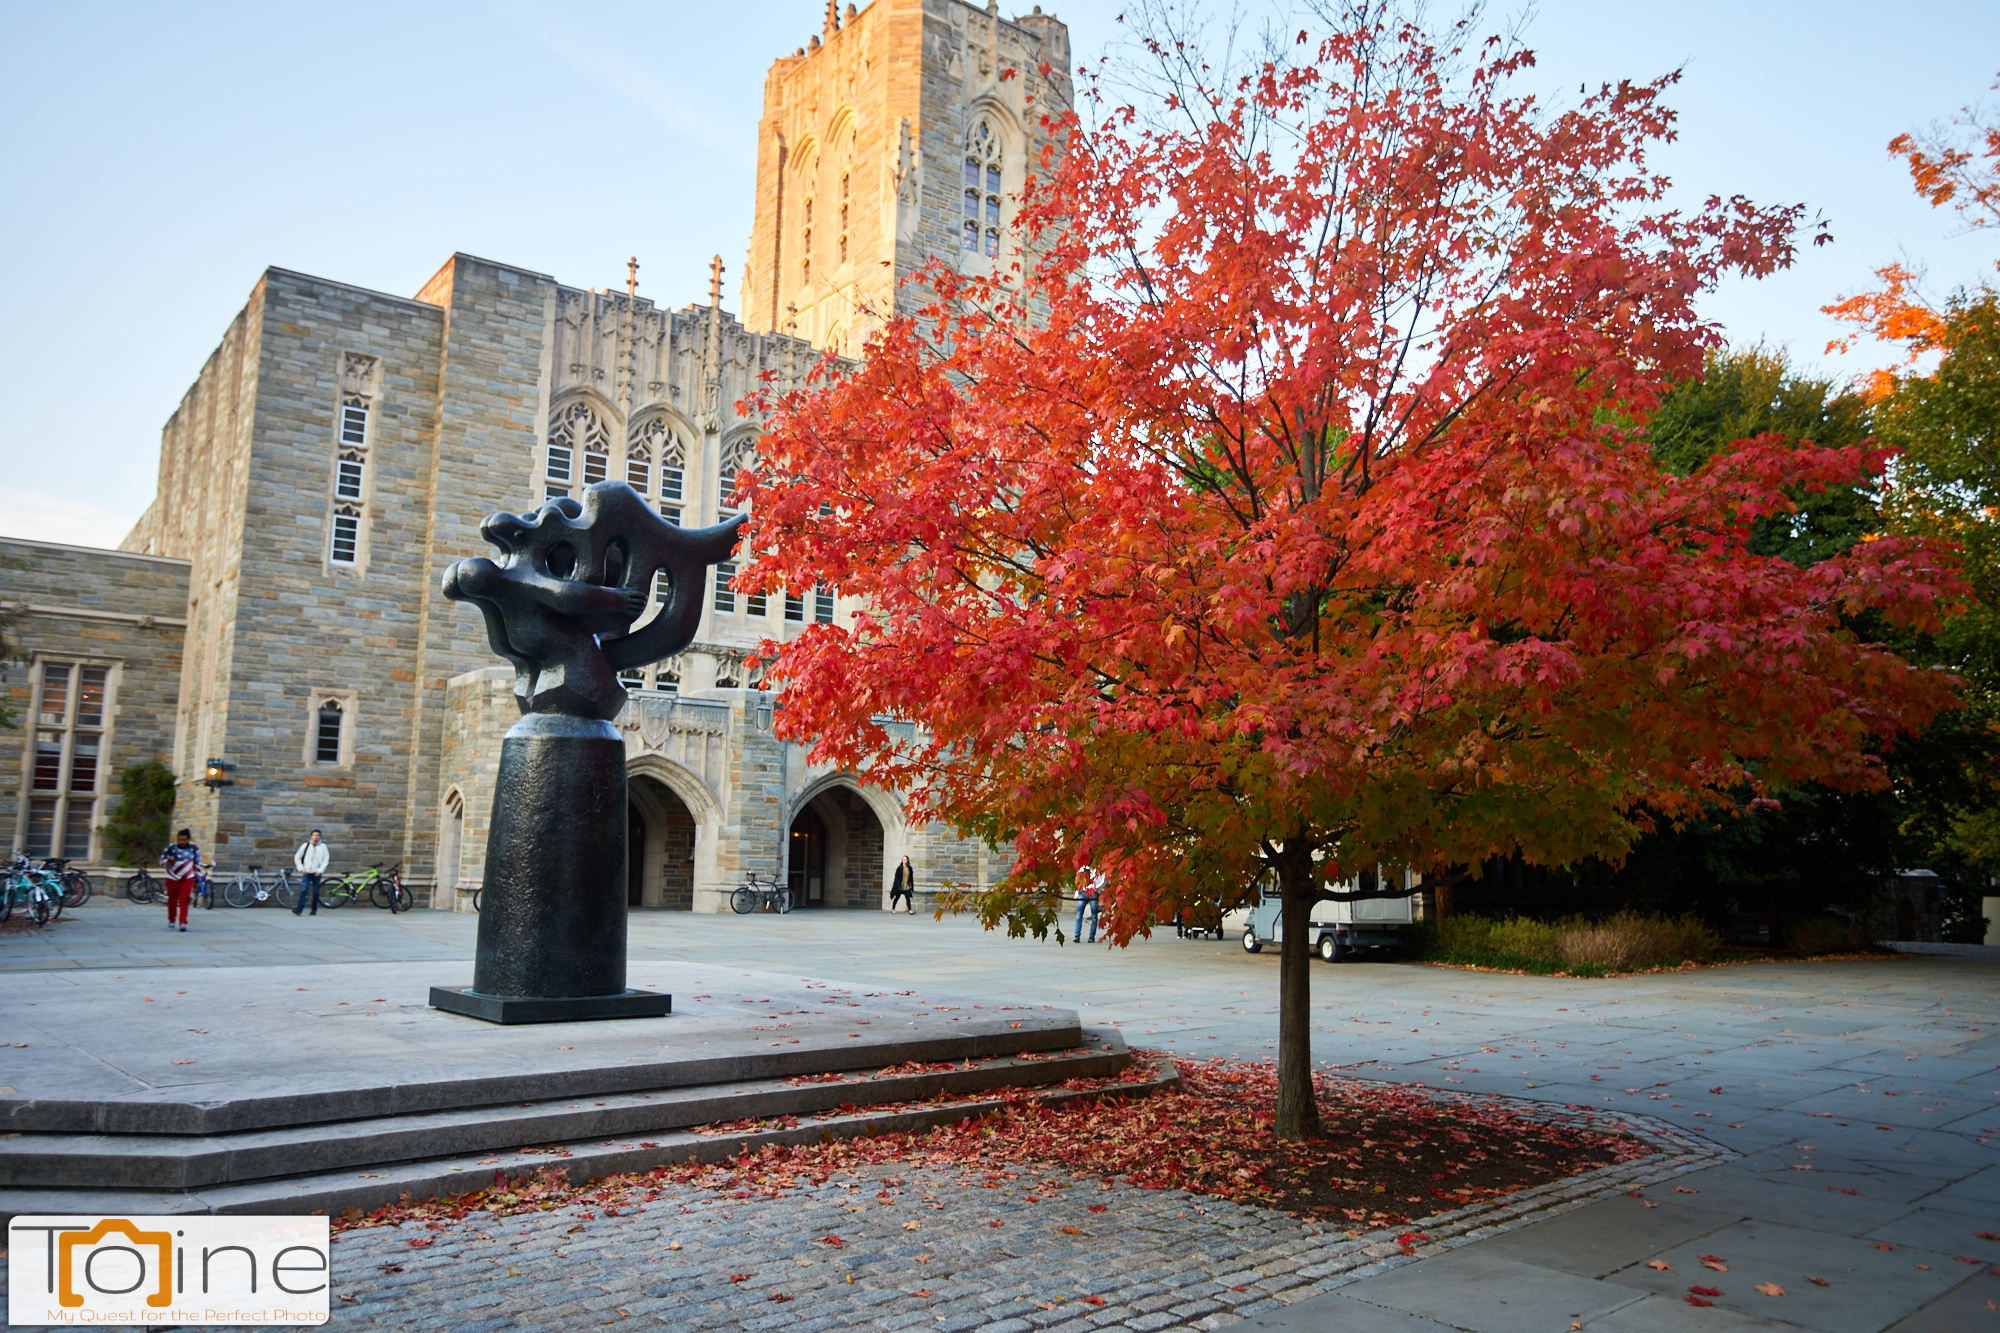 This sculpture next to the tree with the beautiful fall colors at Princeton University really caught my eye